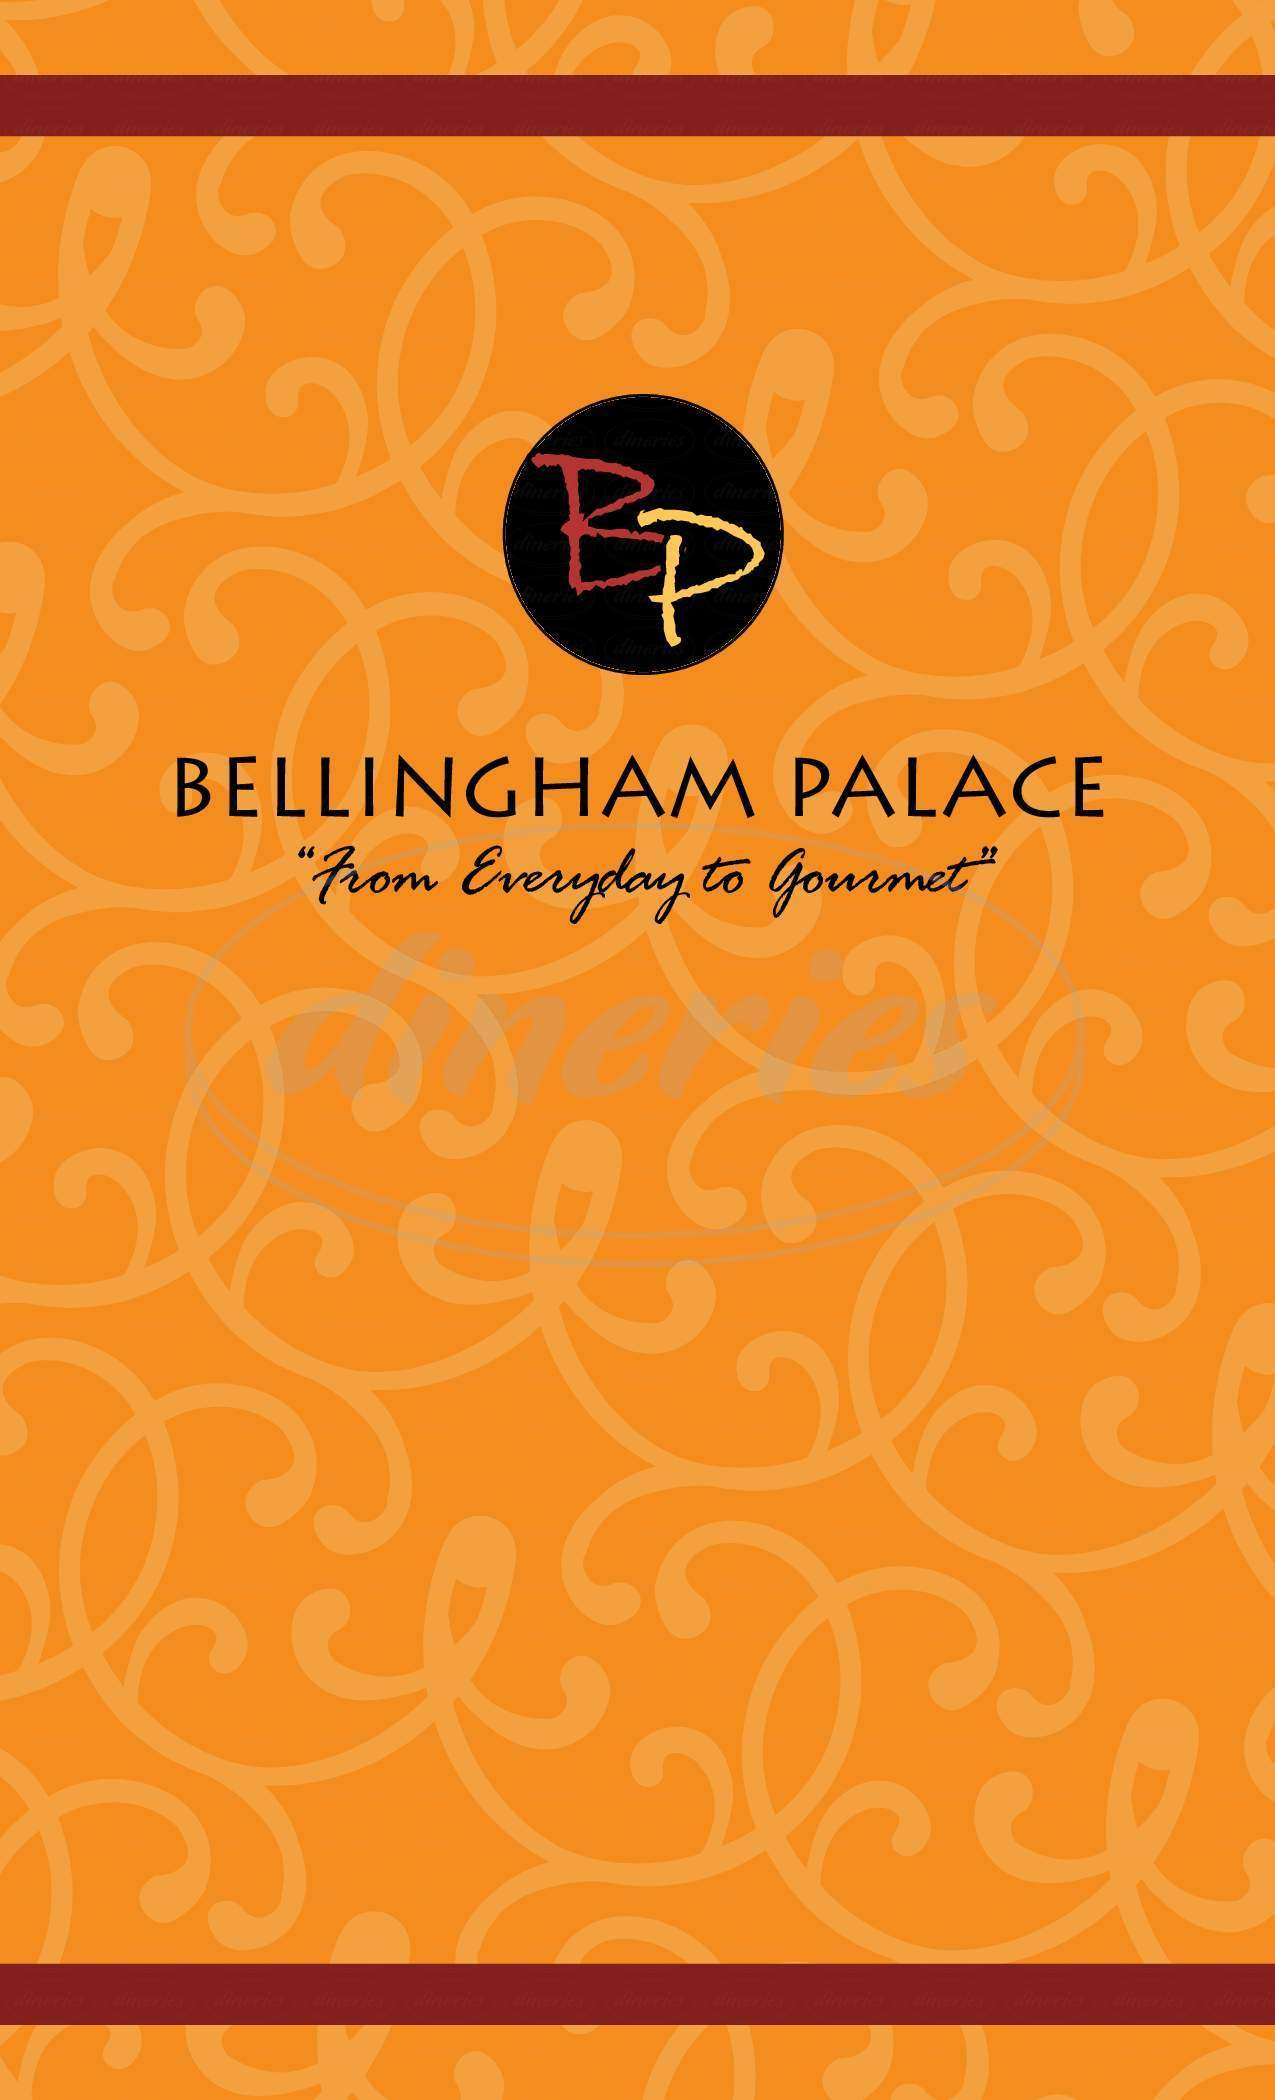 menu for The Bellingham Palace